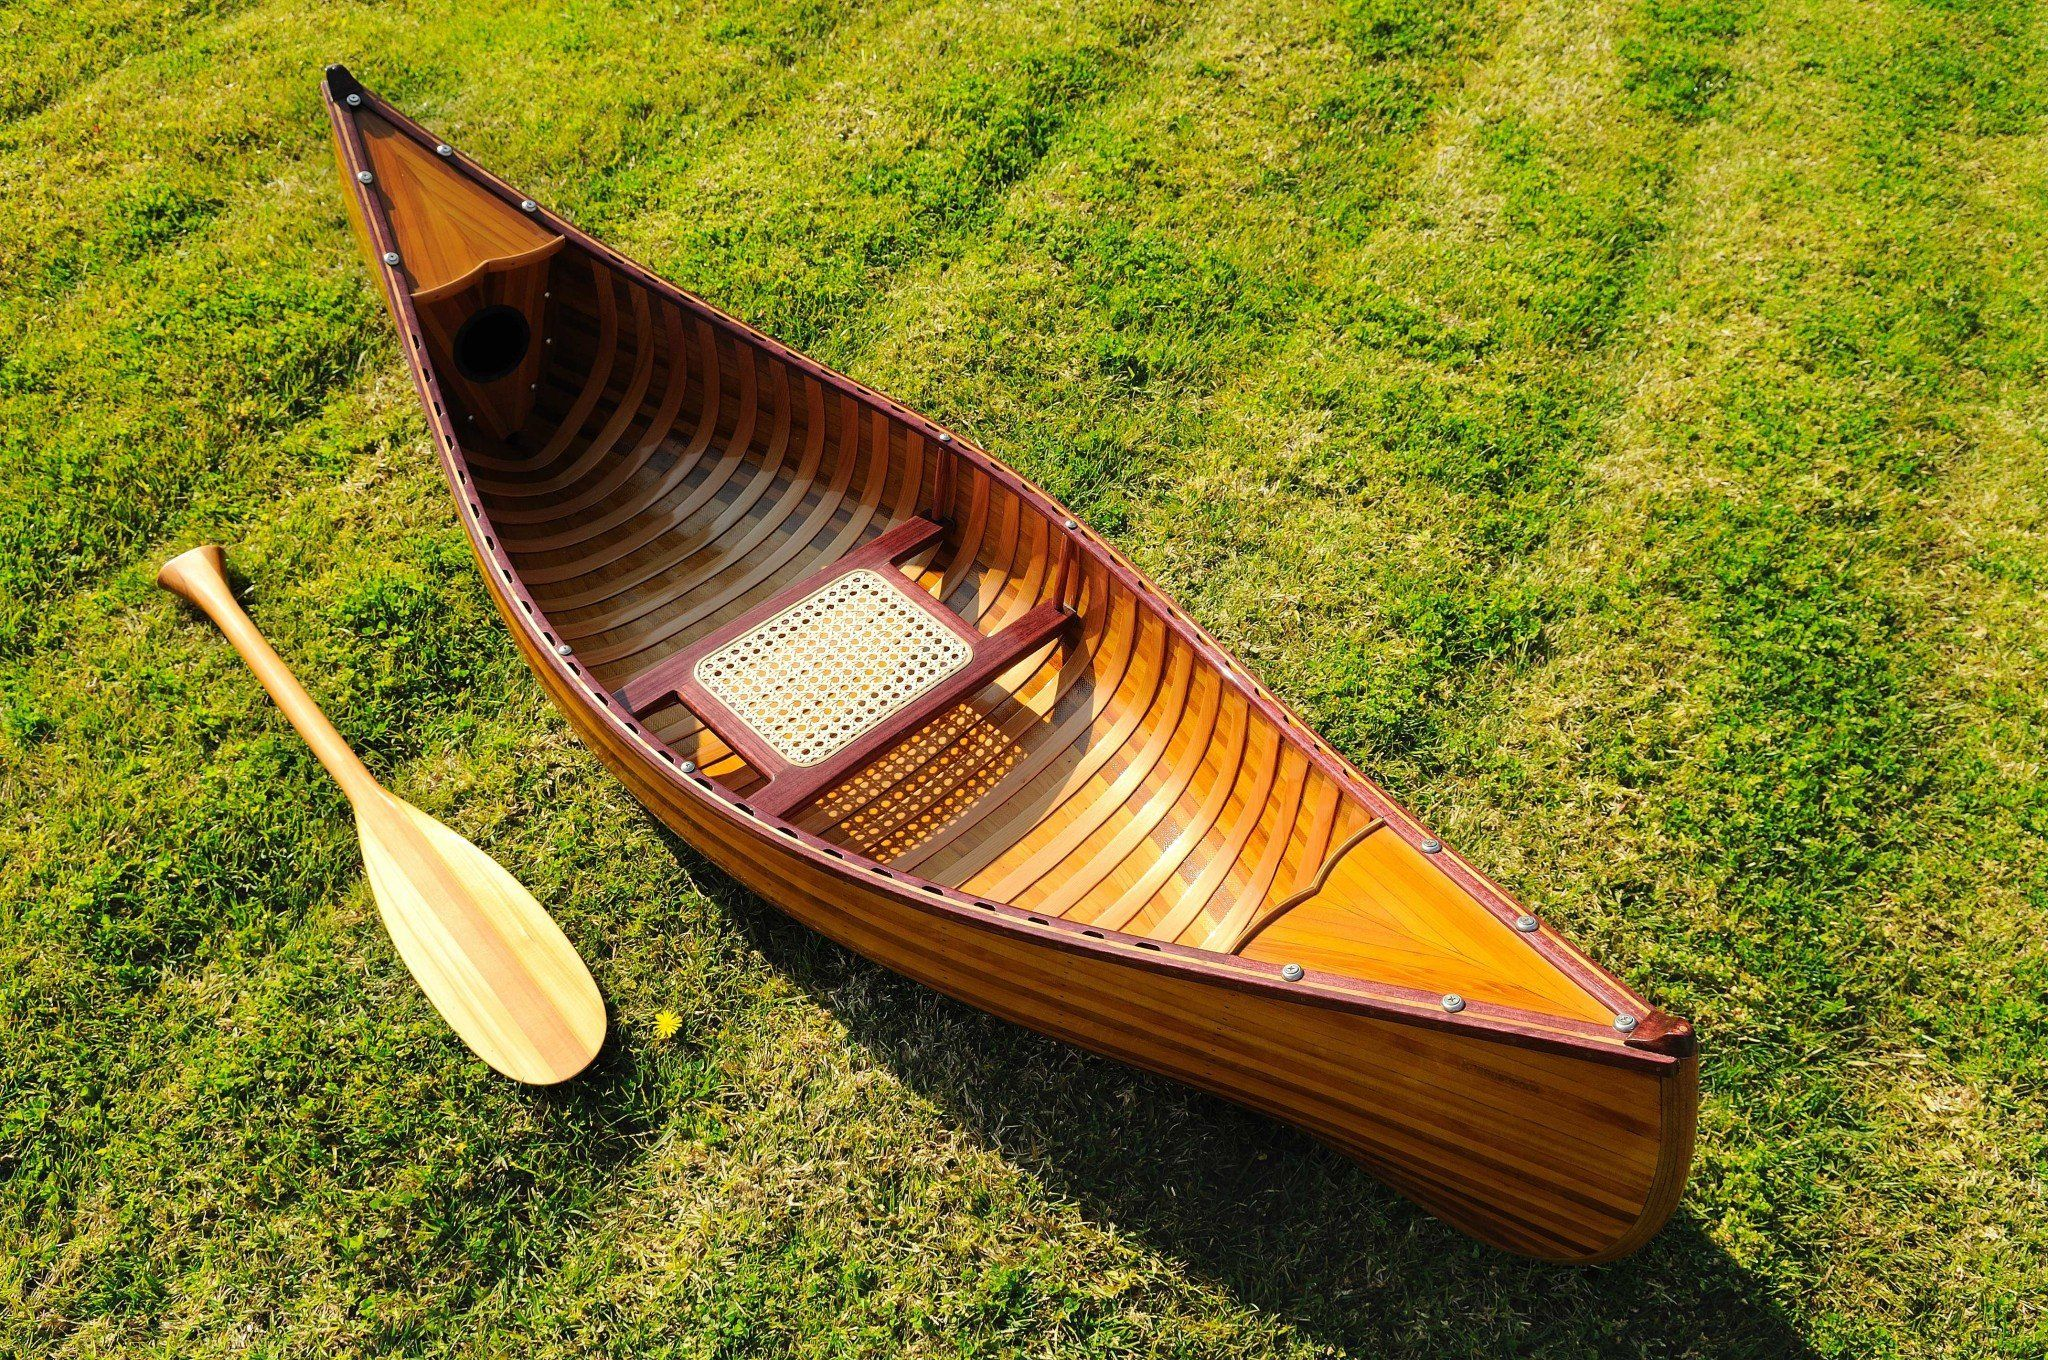 20.25″ x 70.5″ x 15″ Wooden Canoe with Ribs